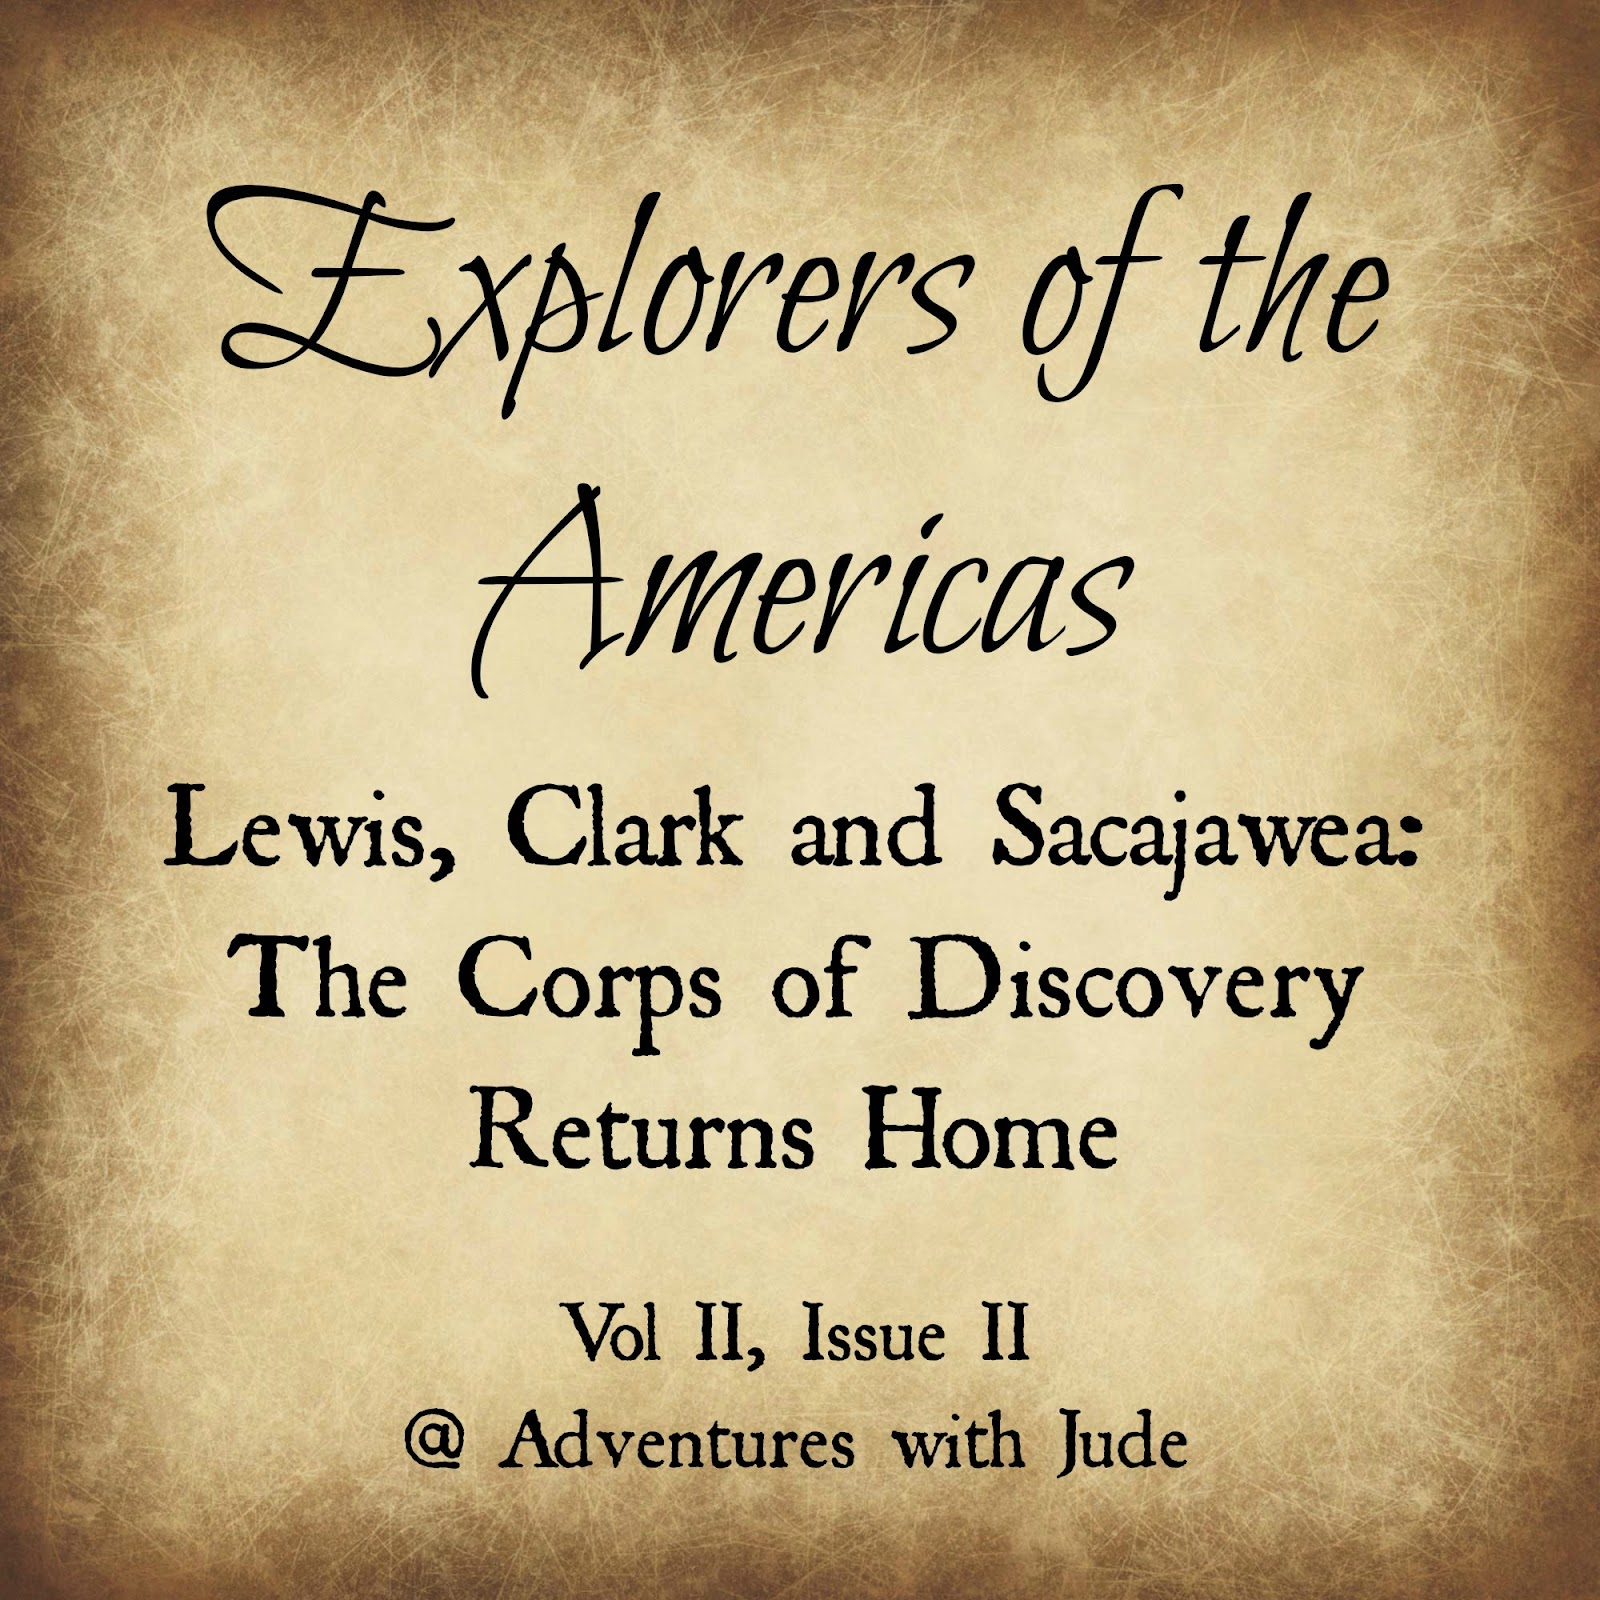 Lewis Clark and Sacajawea explore the Louisiana Purchase